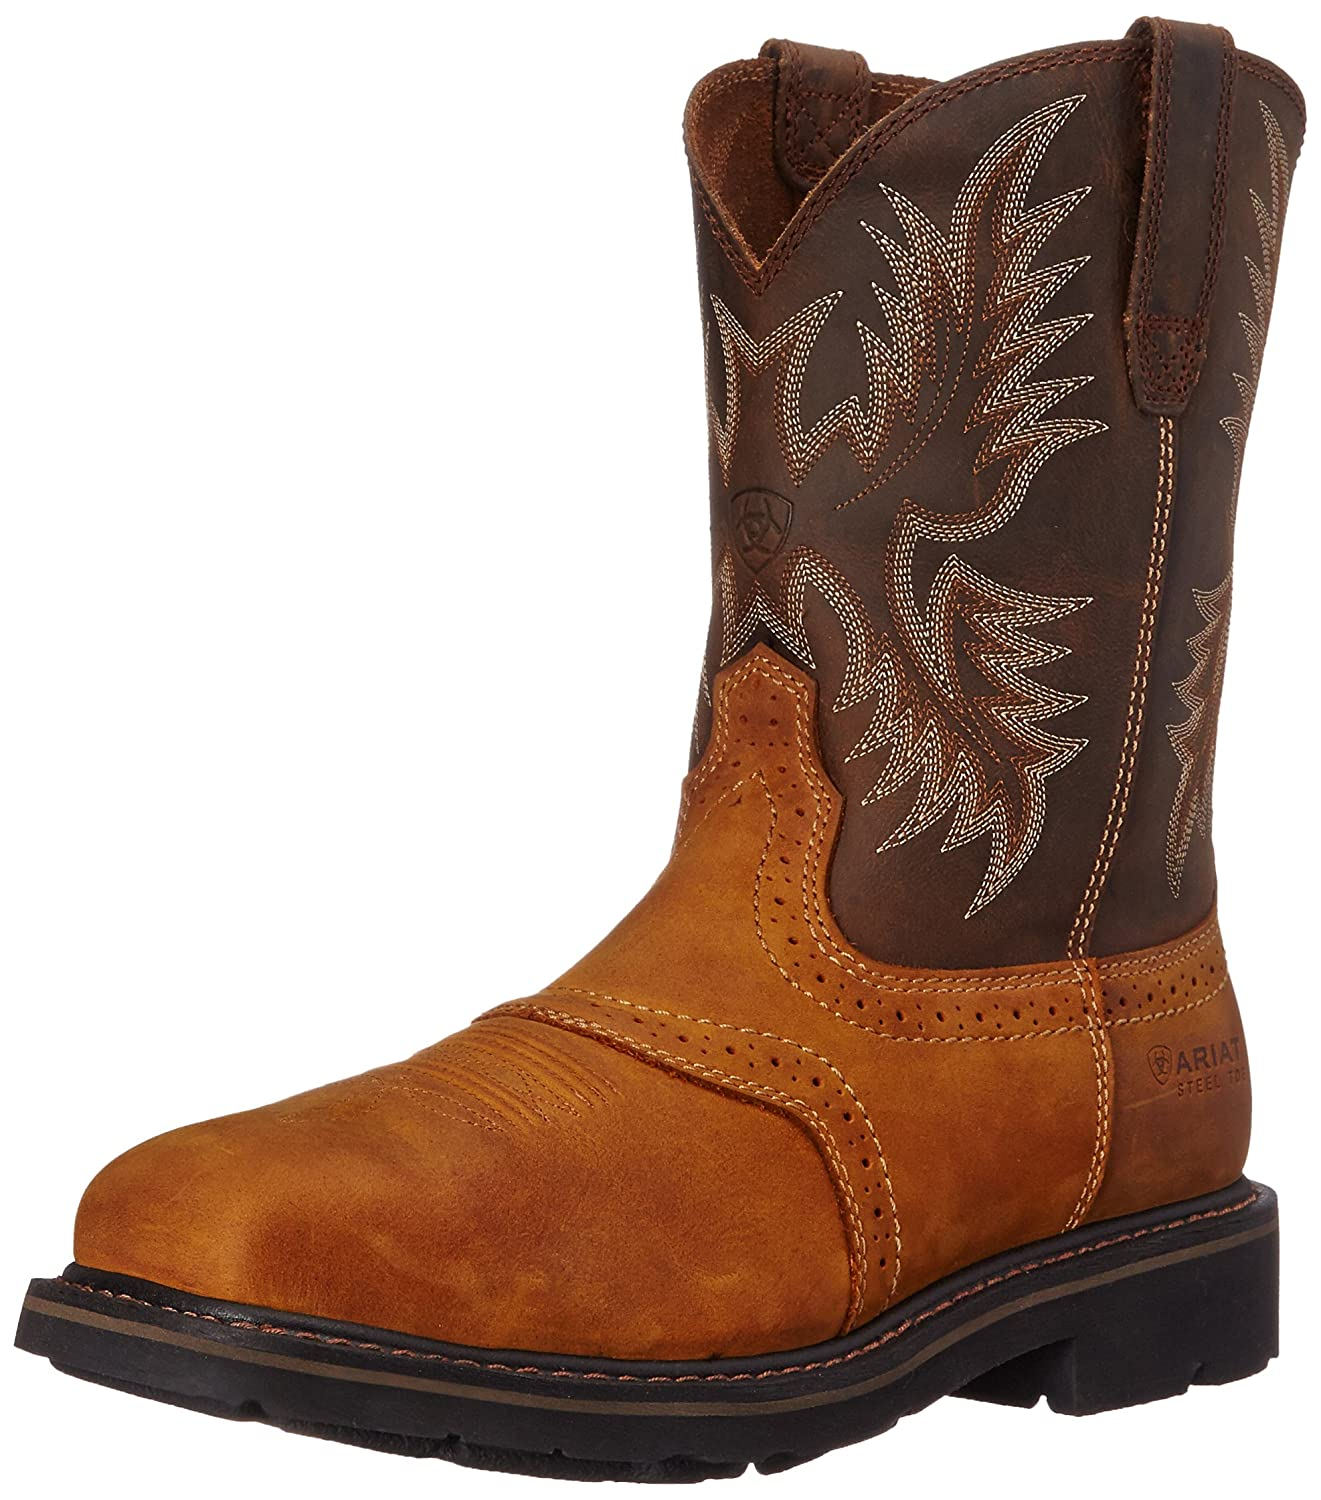 Ariat メンズ 100010134 Aged Bark 7 Medium (D) US 7 Medium (D) USAged Bark B00748ZN1C